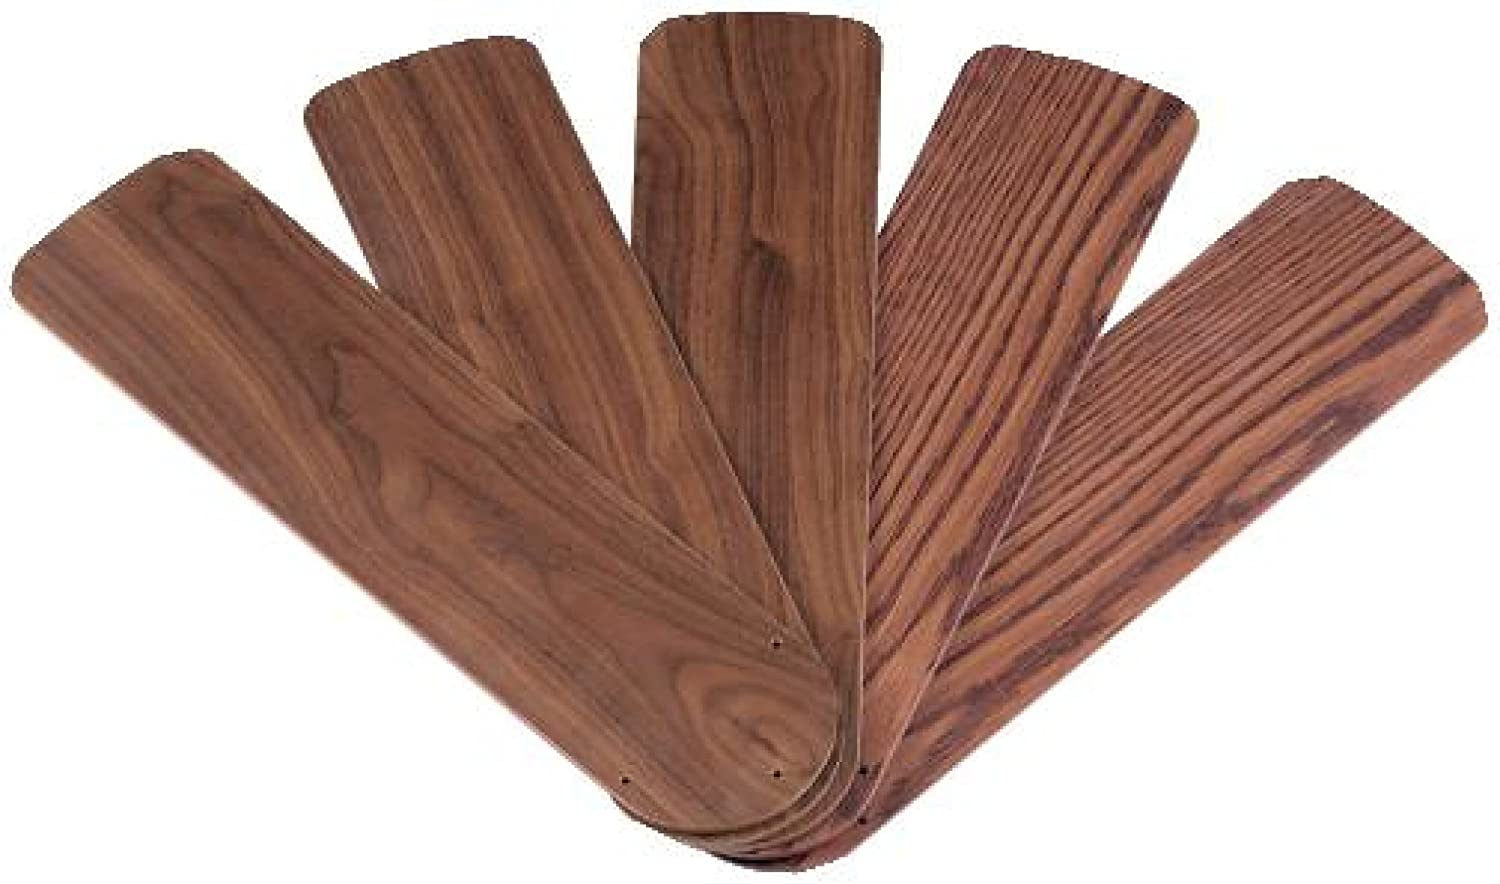 Westinghouse 7741500 52-Inch Oak/Walnut Replacement Fan Blades, Five-Pack Jensen (Home Improvement) 2960-0368